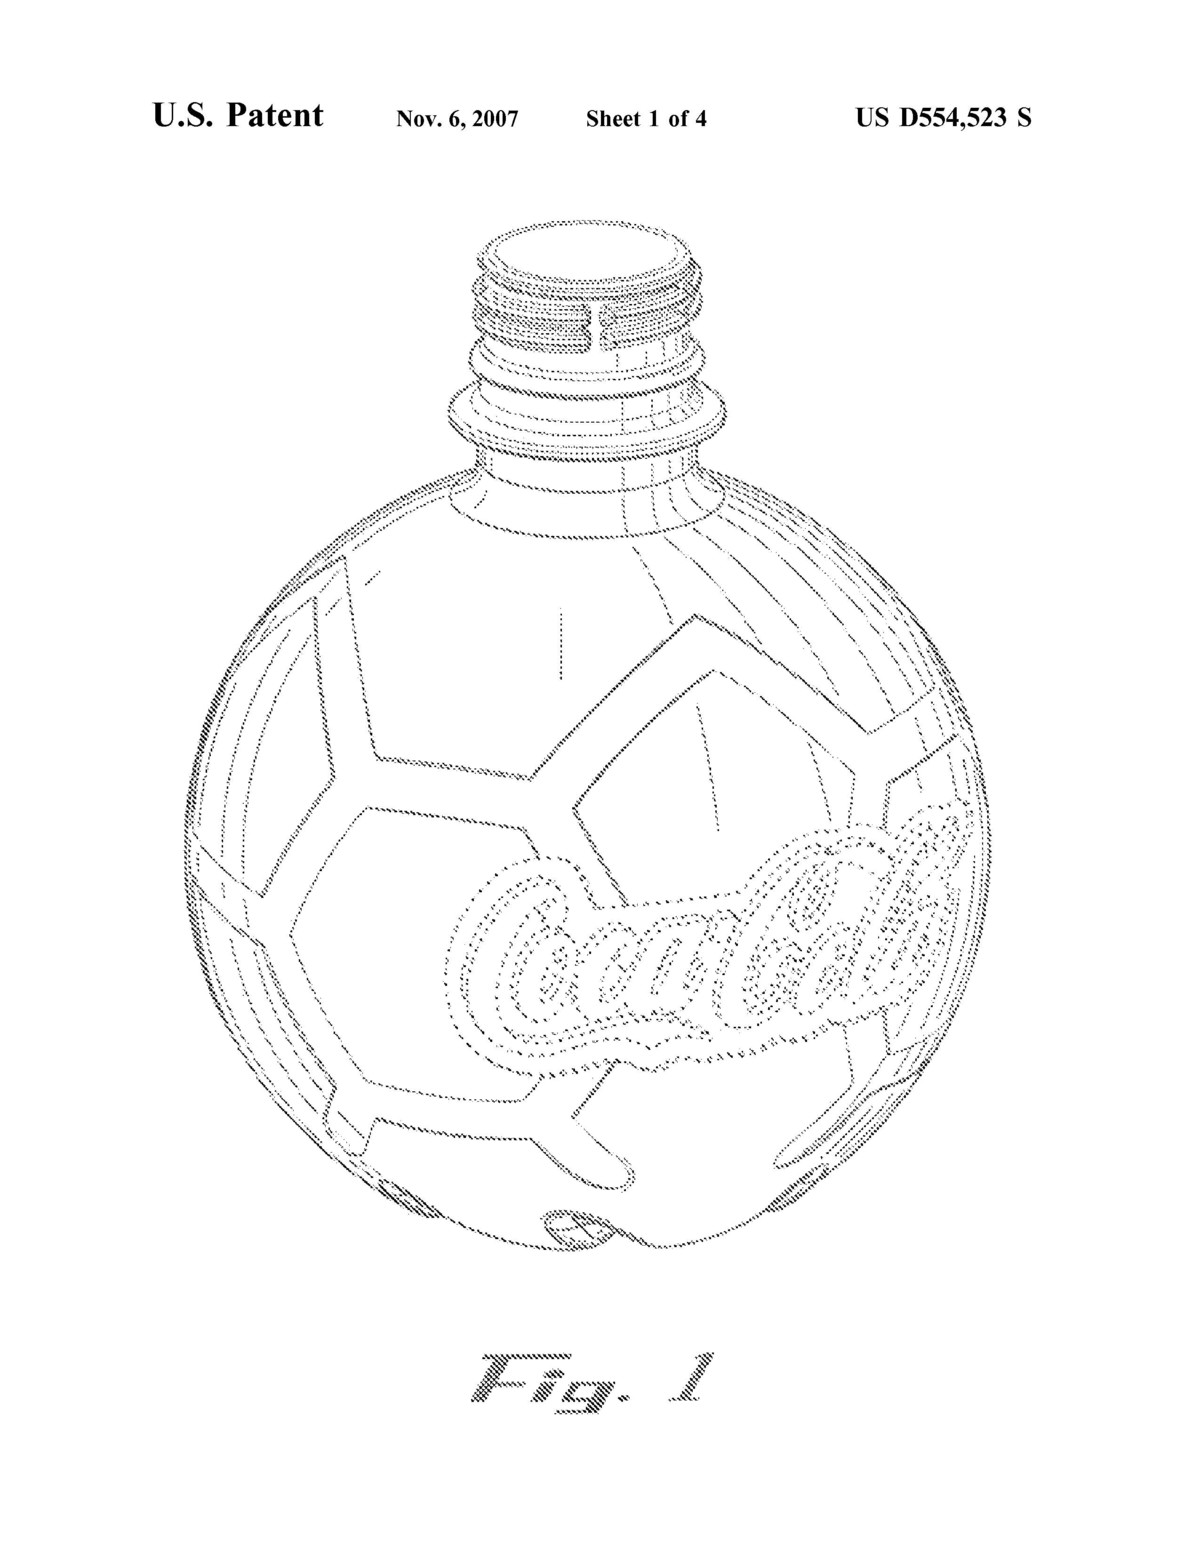 1200x1553 Coke Bottle 100th Birthday Patent History Time